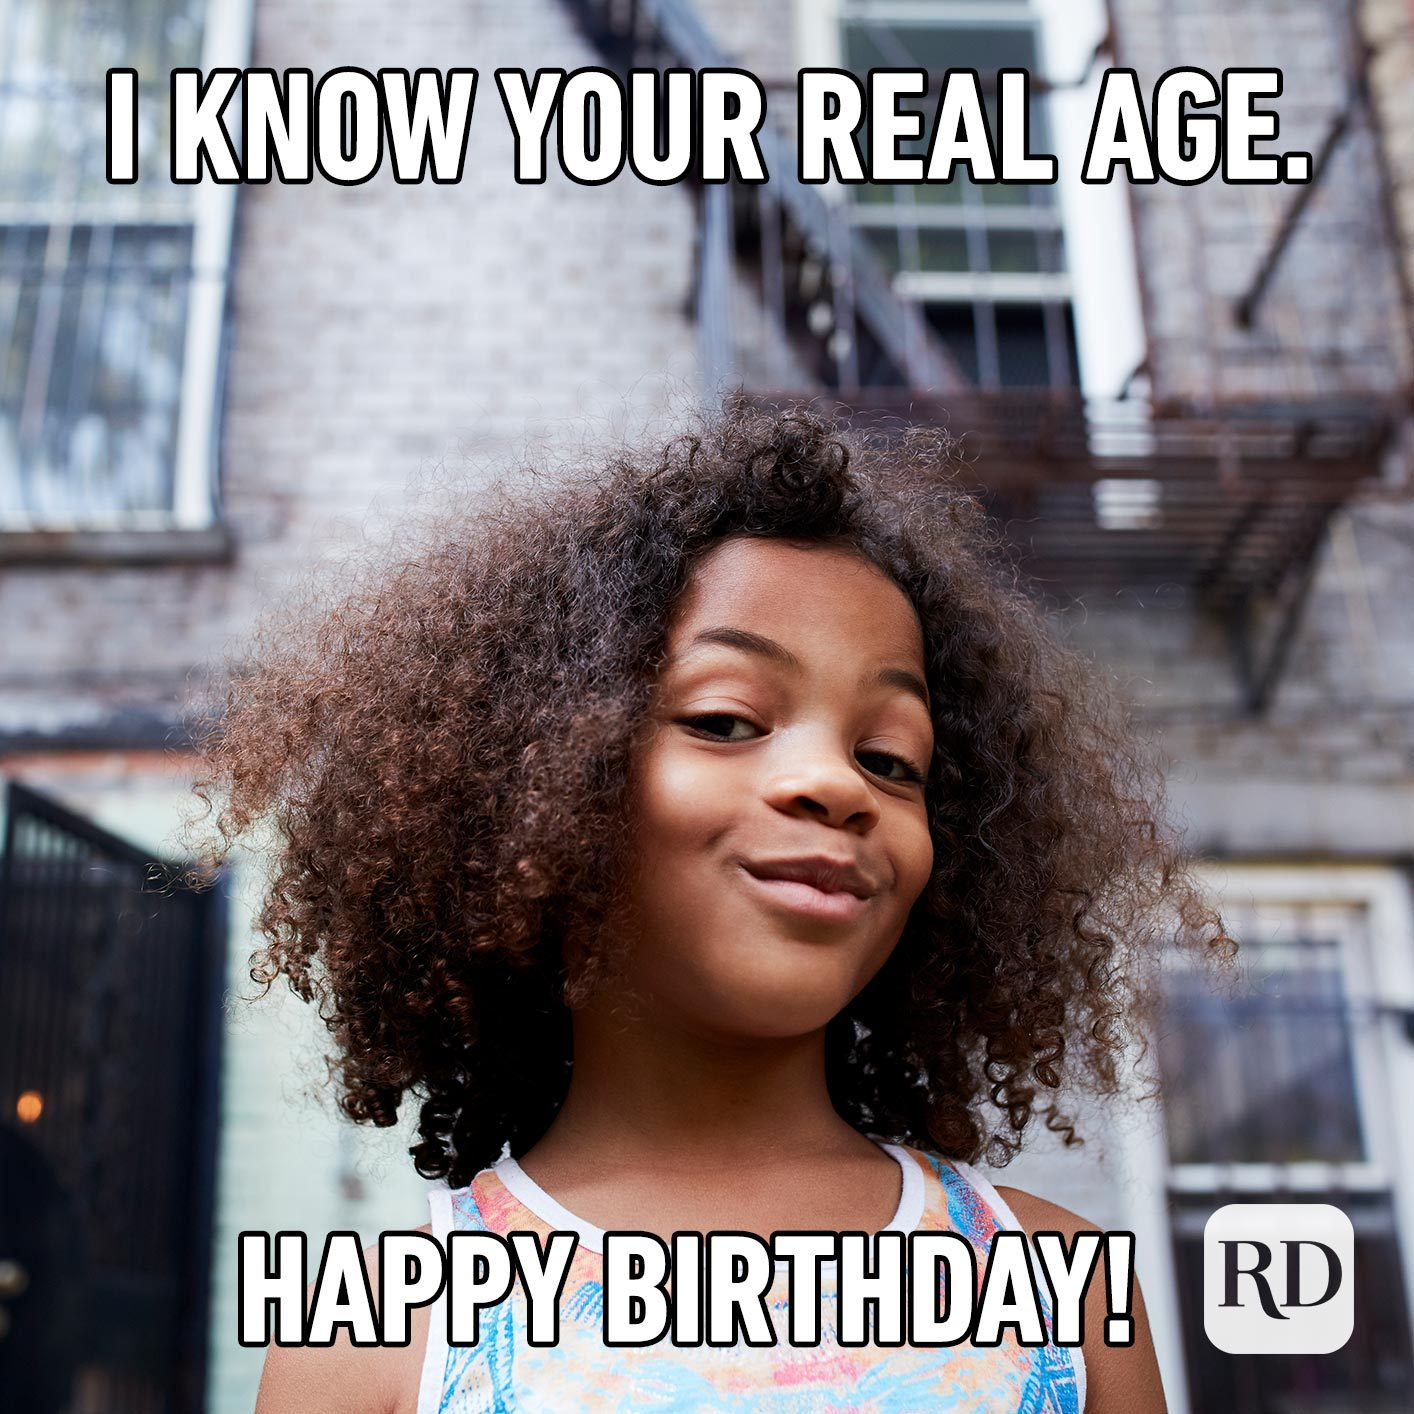 I know your real age. Happy Birthday!